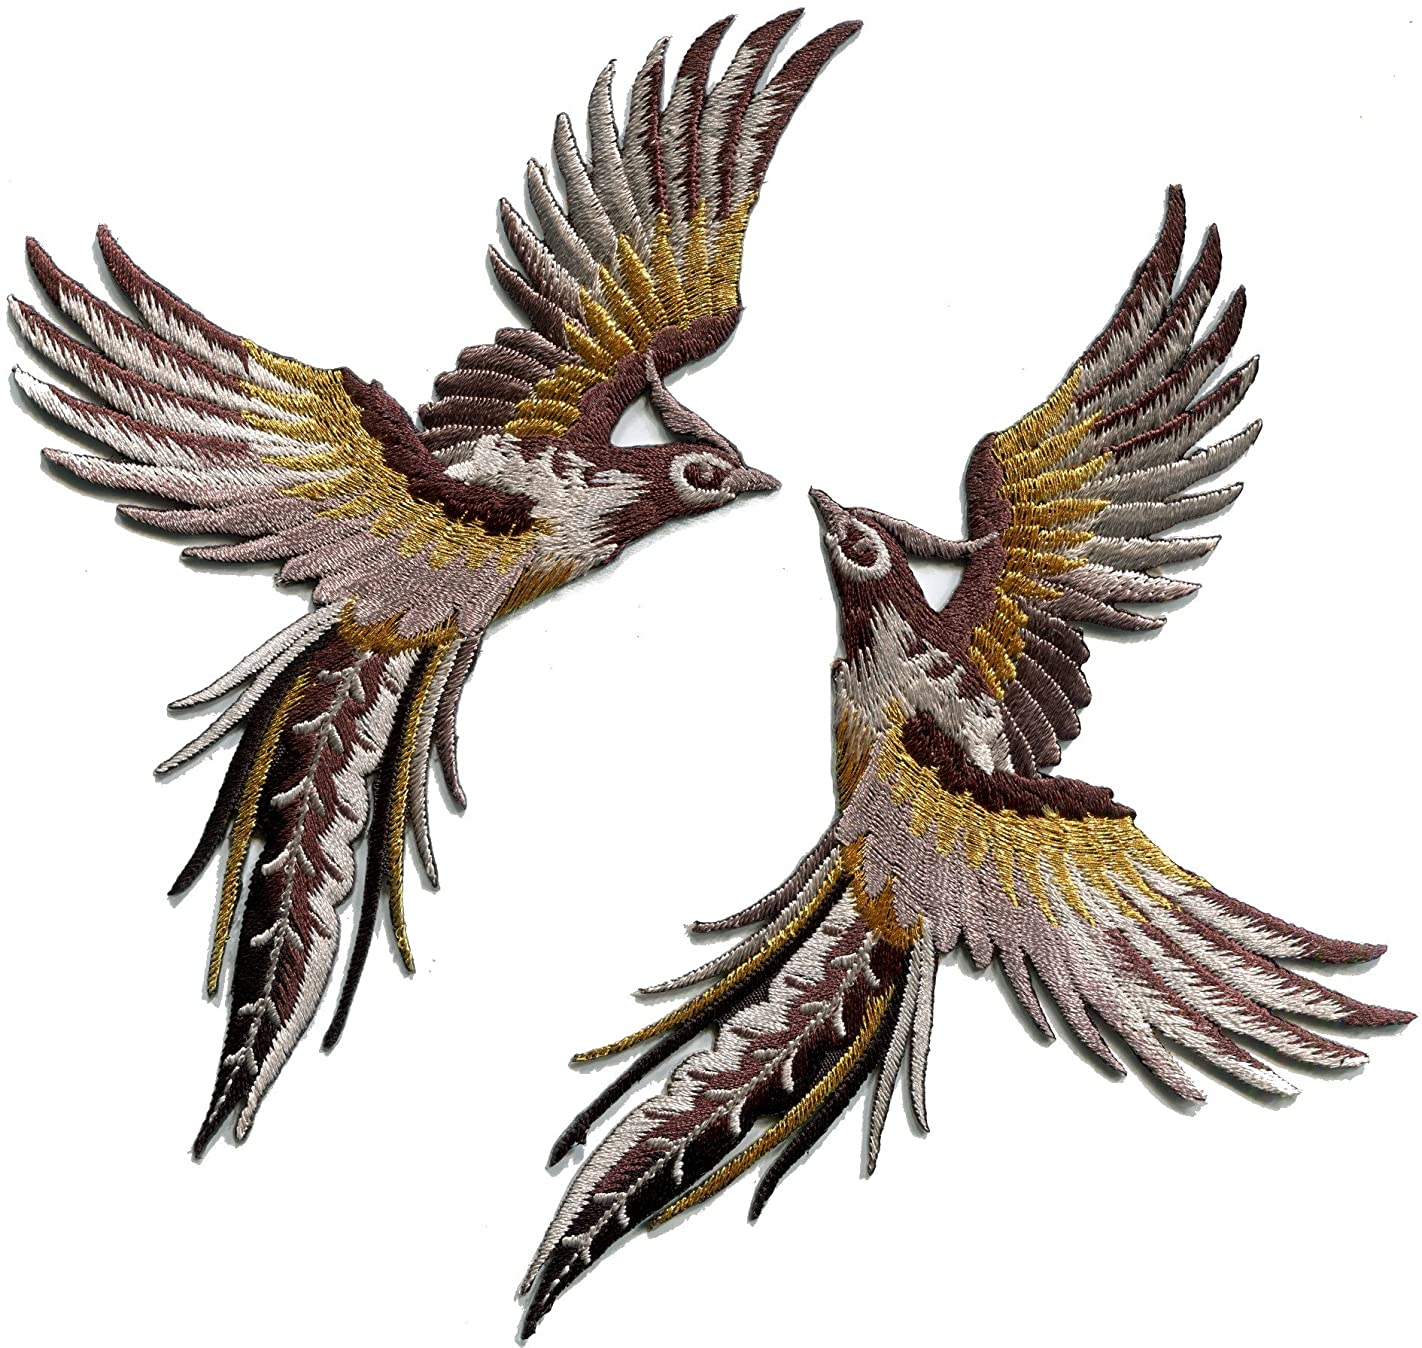 Phoenix phenix birds cedar brown black gold embroidered appliques iron-on patches pair S-1339 v89316827230